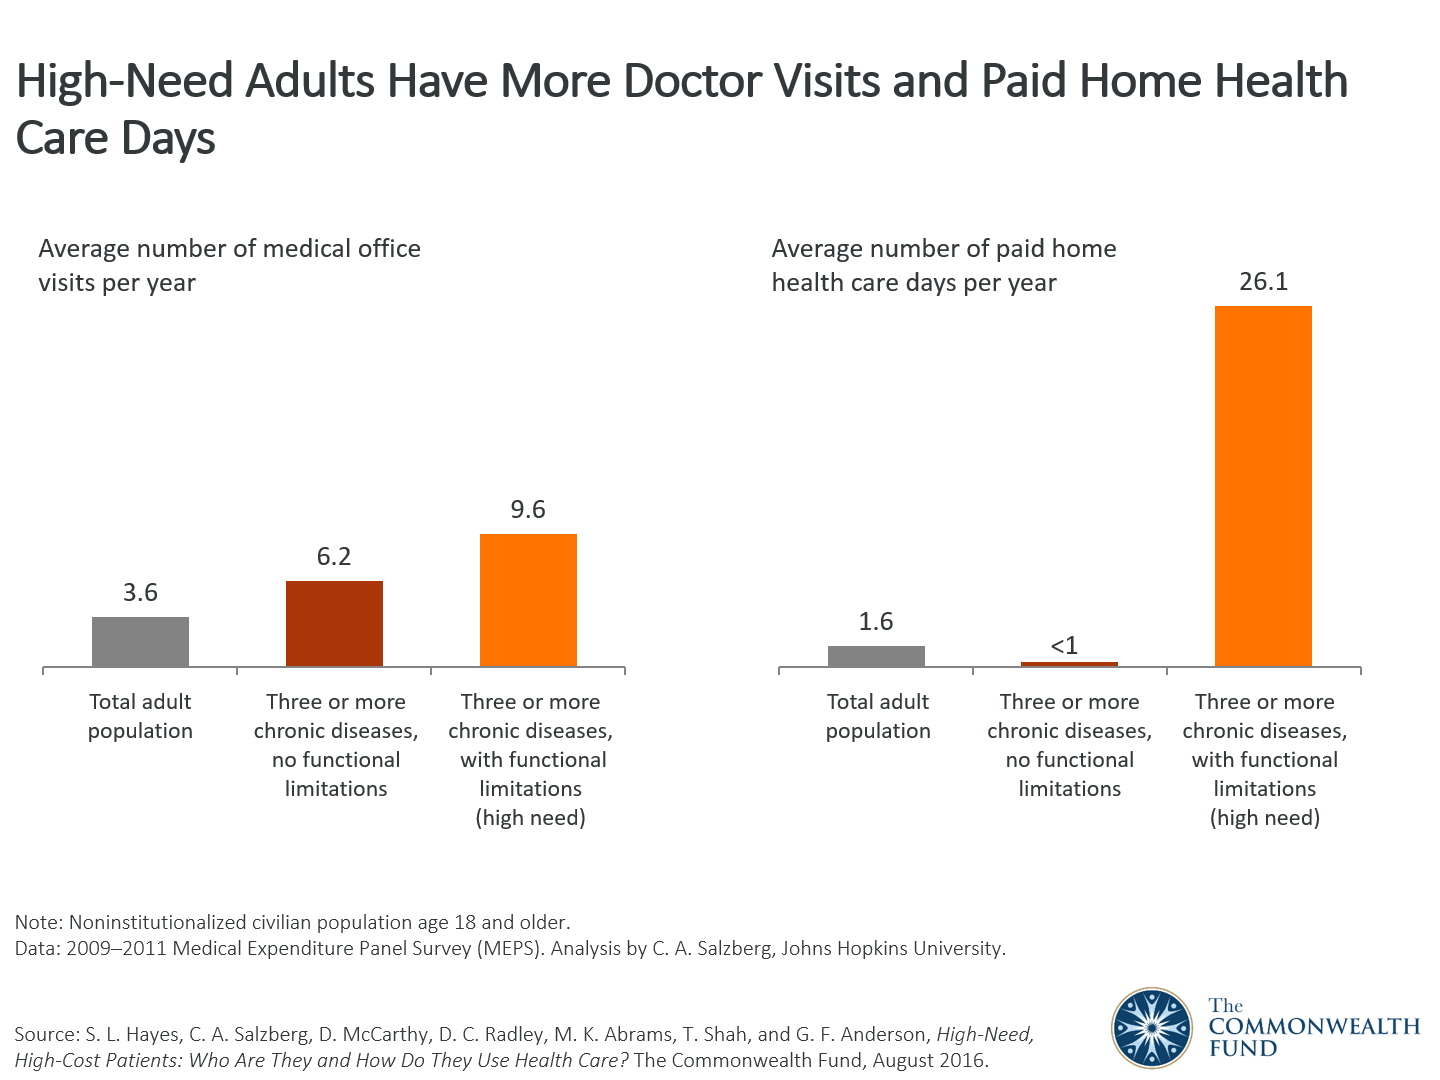 high-need adults have more doctor visits and paid home health care